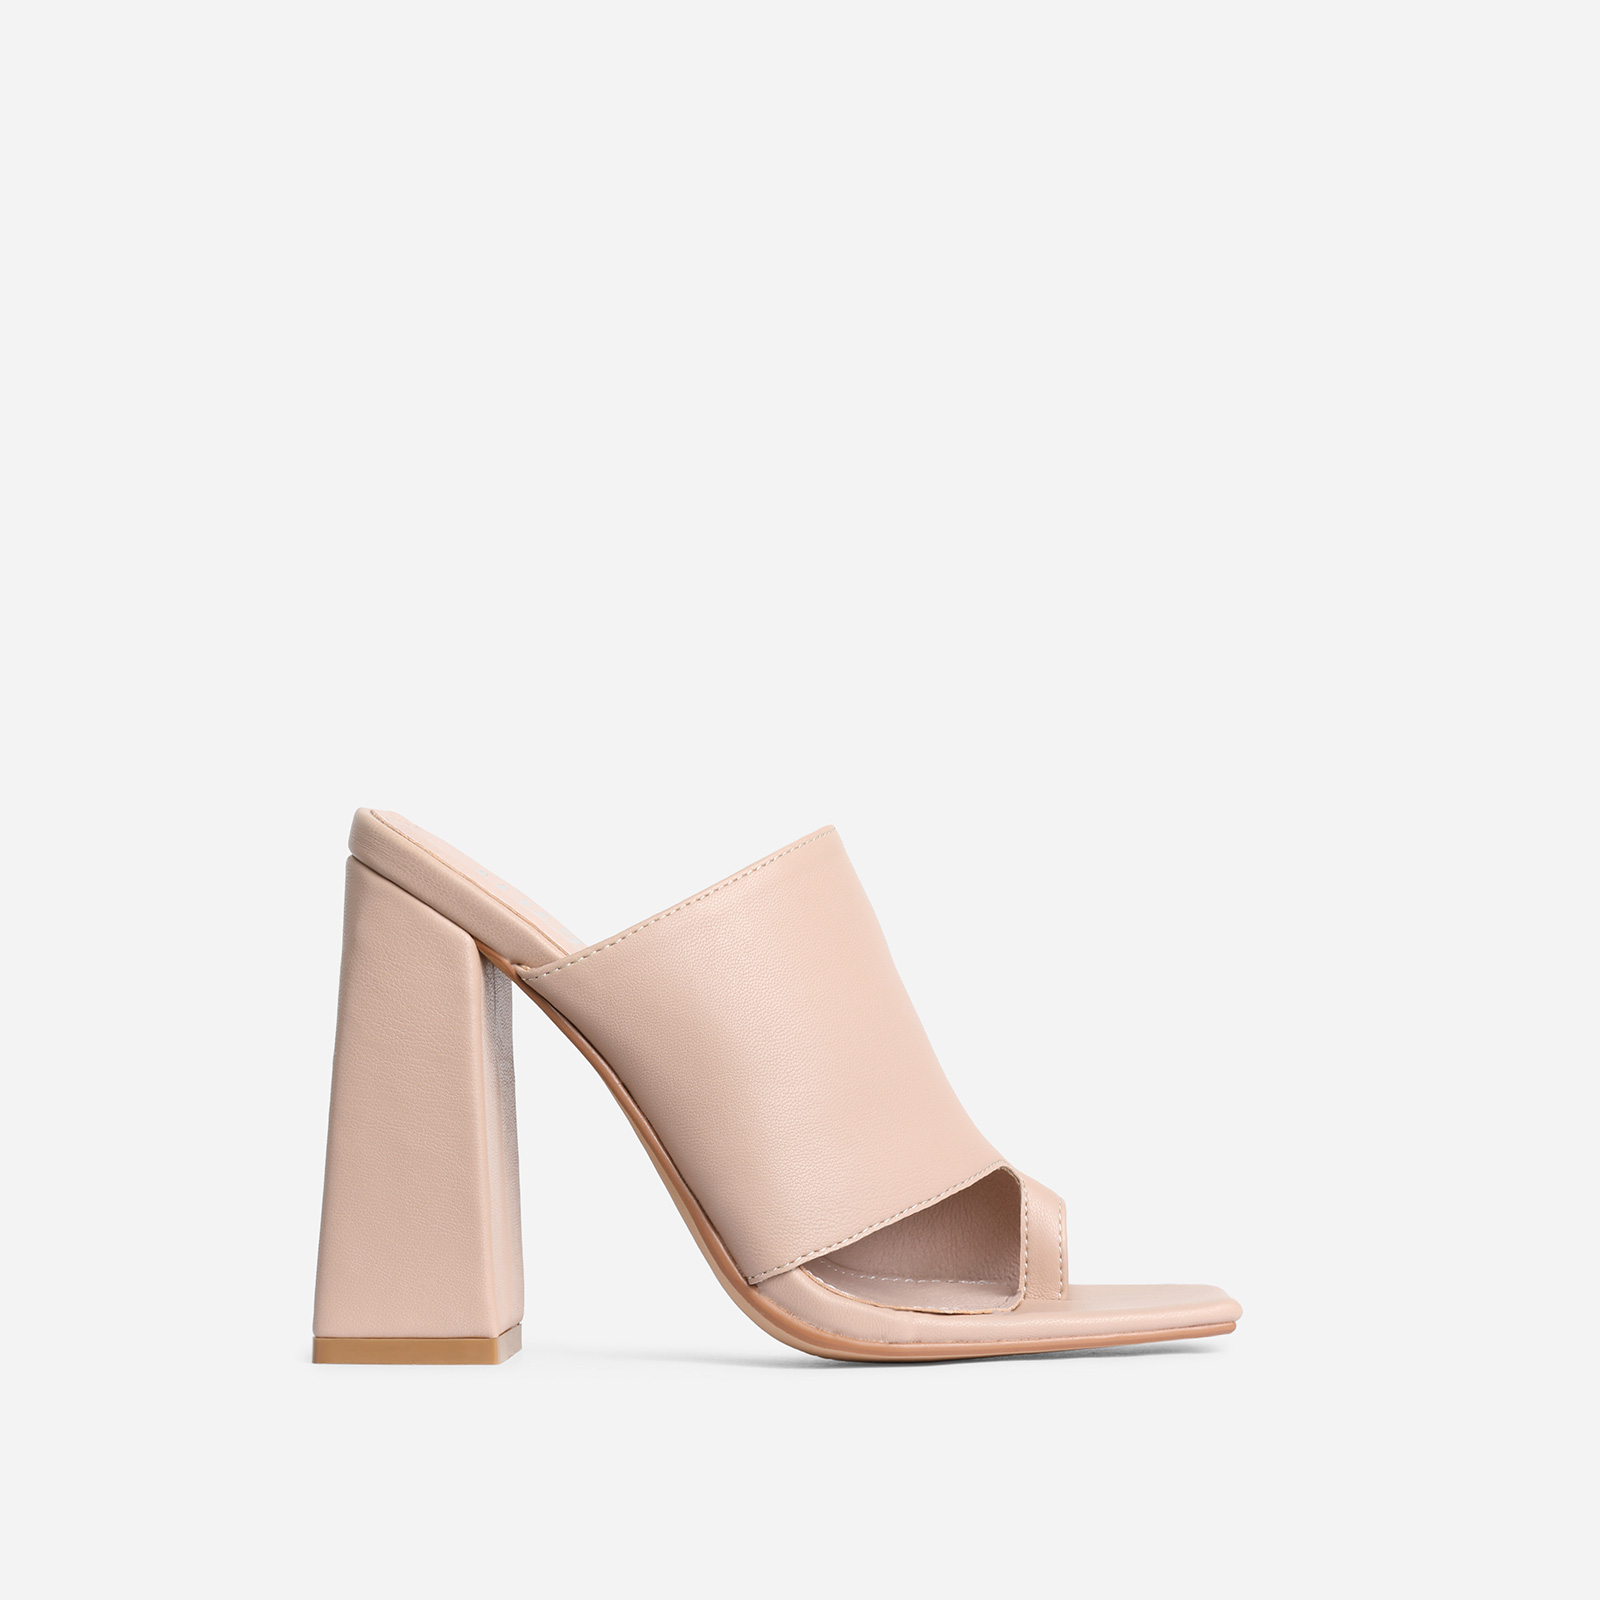 Anfo Square Peep Toe Flared Block Heel Mule In Nude Faux Leather